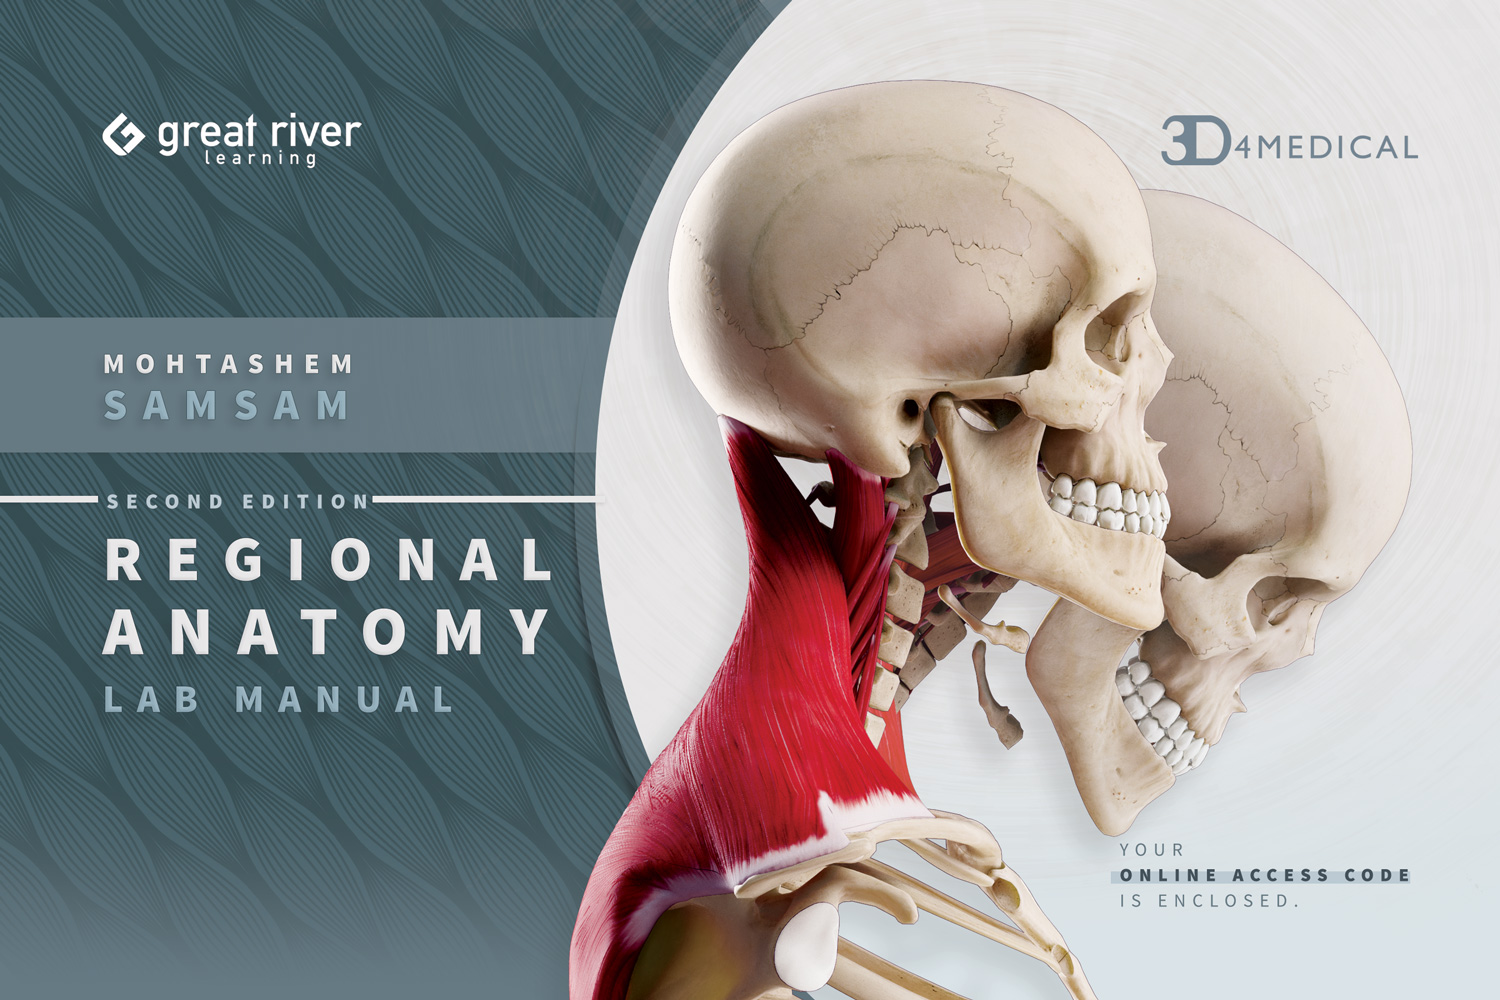 Product Details - Regional Anatomy Lab Manual | Great River Learning